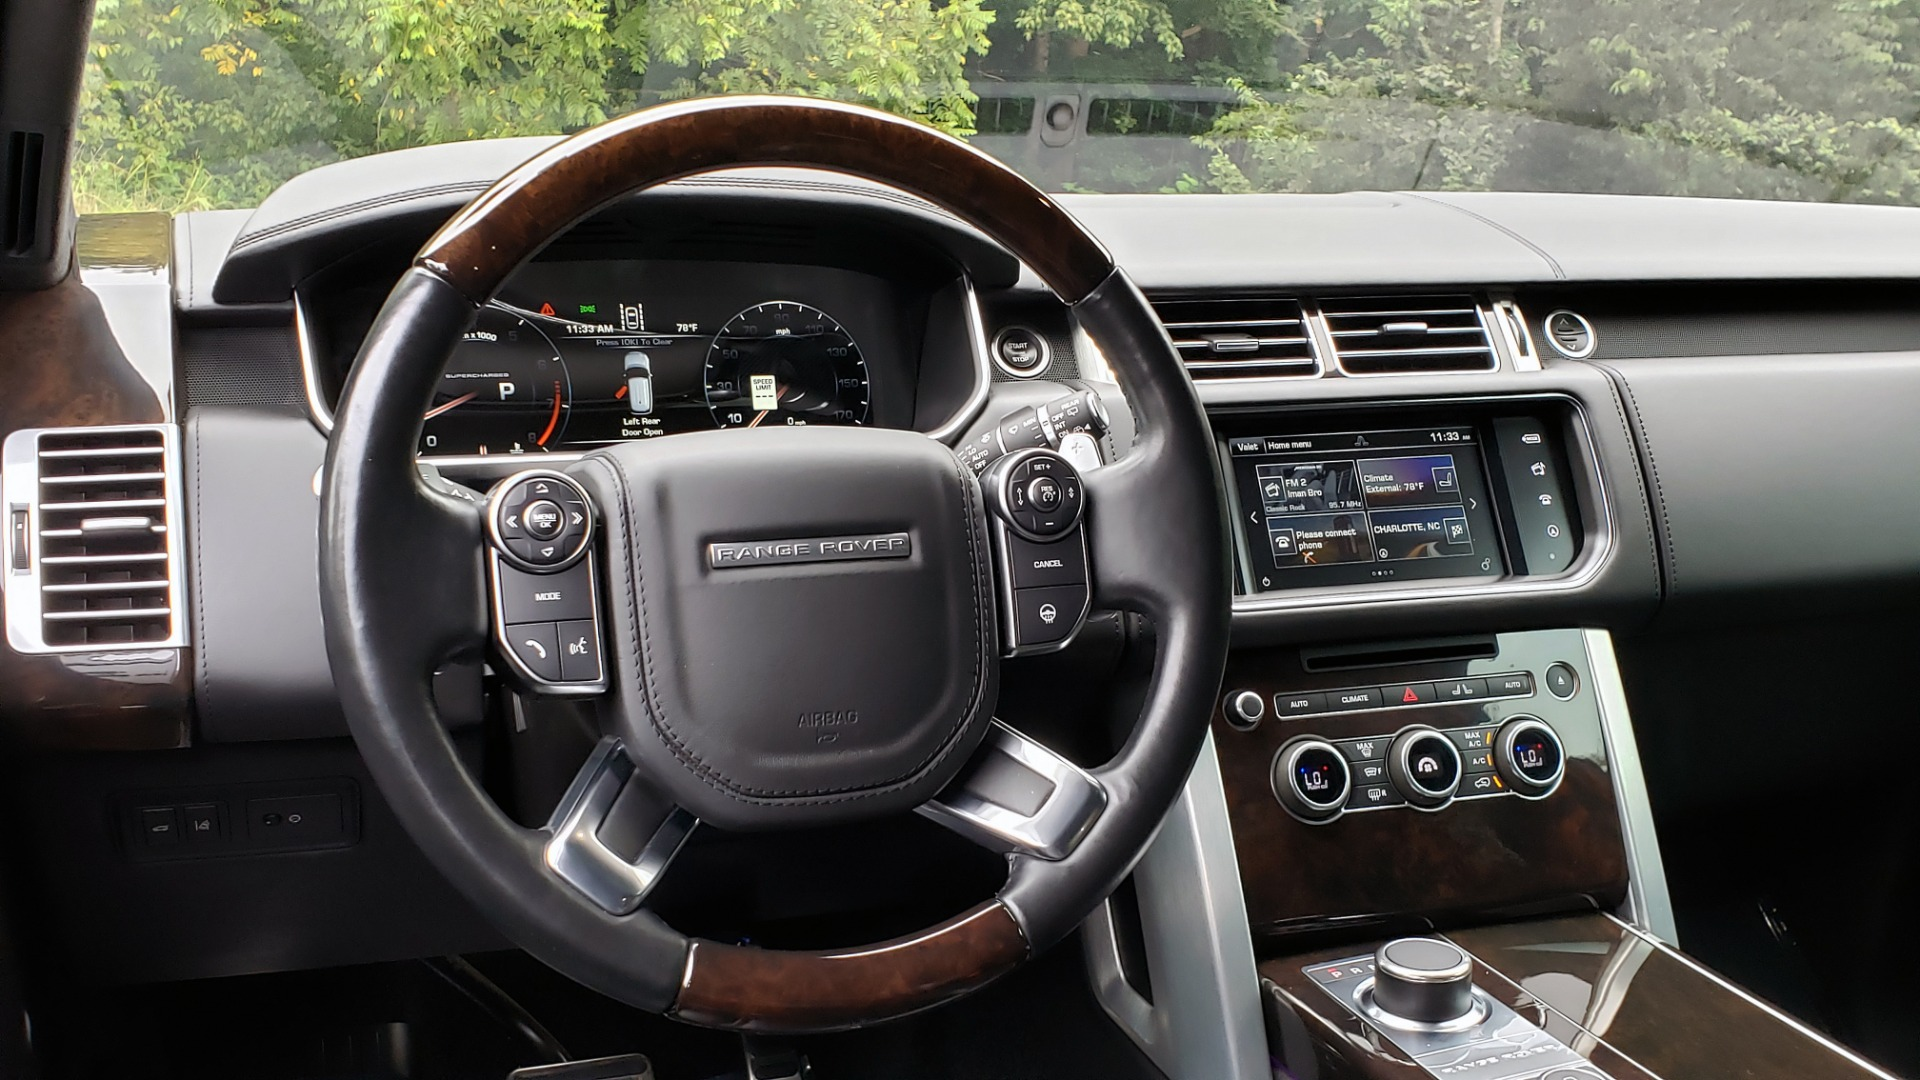 Used 2016 Land Rover RANGE ROVER AUTOBIOGRAPHY / SC-V8 / LWB / PANO-ROOF / NAV / MERIDIAN / ENT / REARVIEW for sale Sold at Formula Imports in Charlotte NC 28227 49